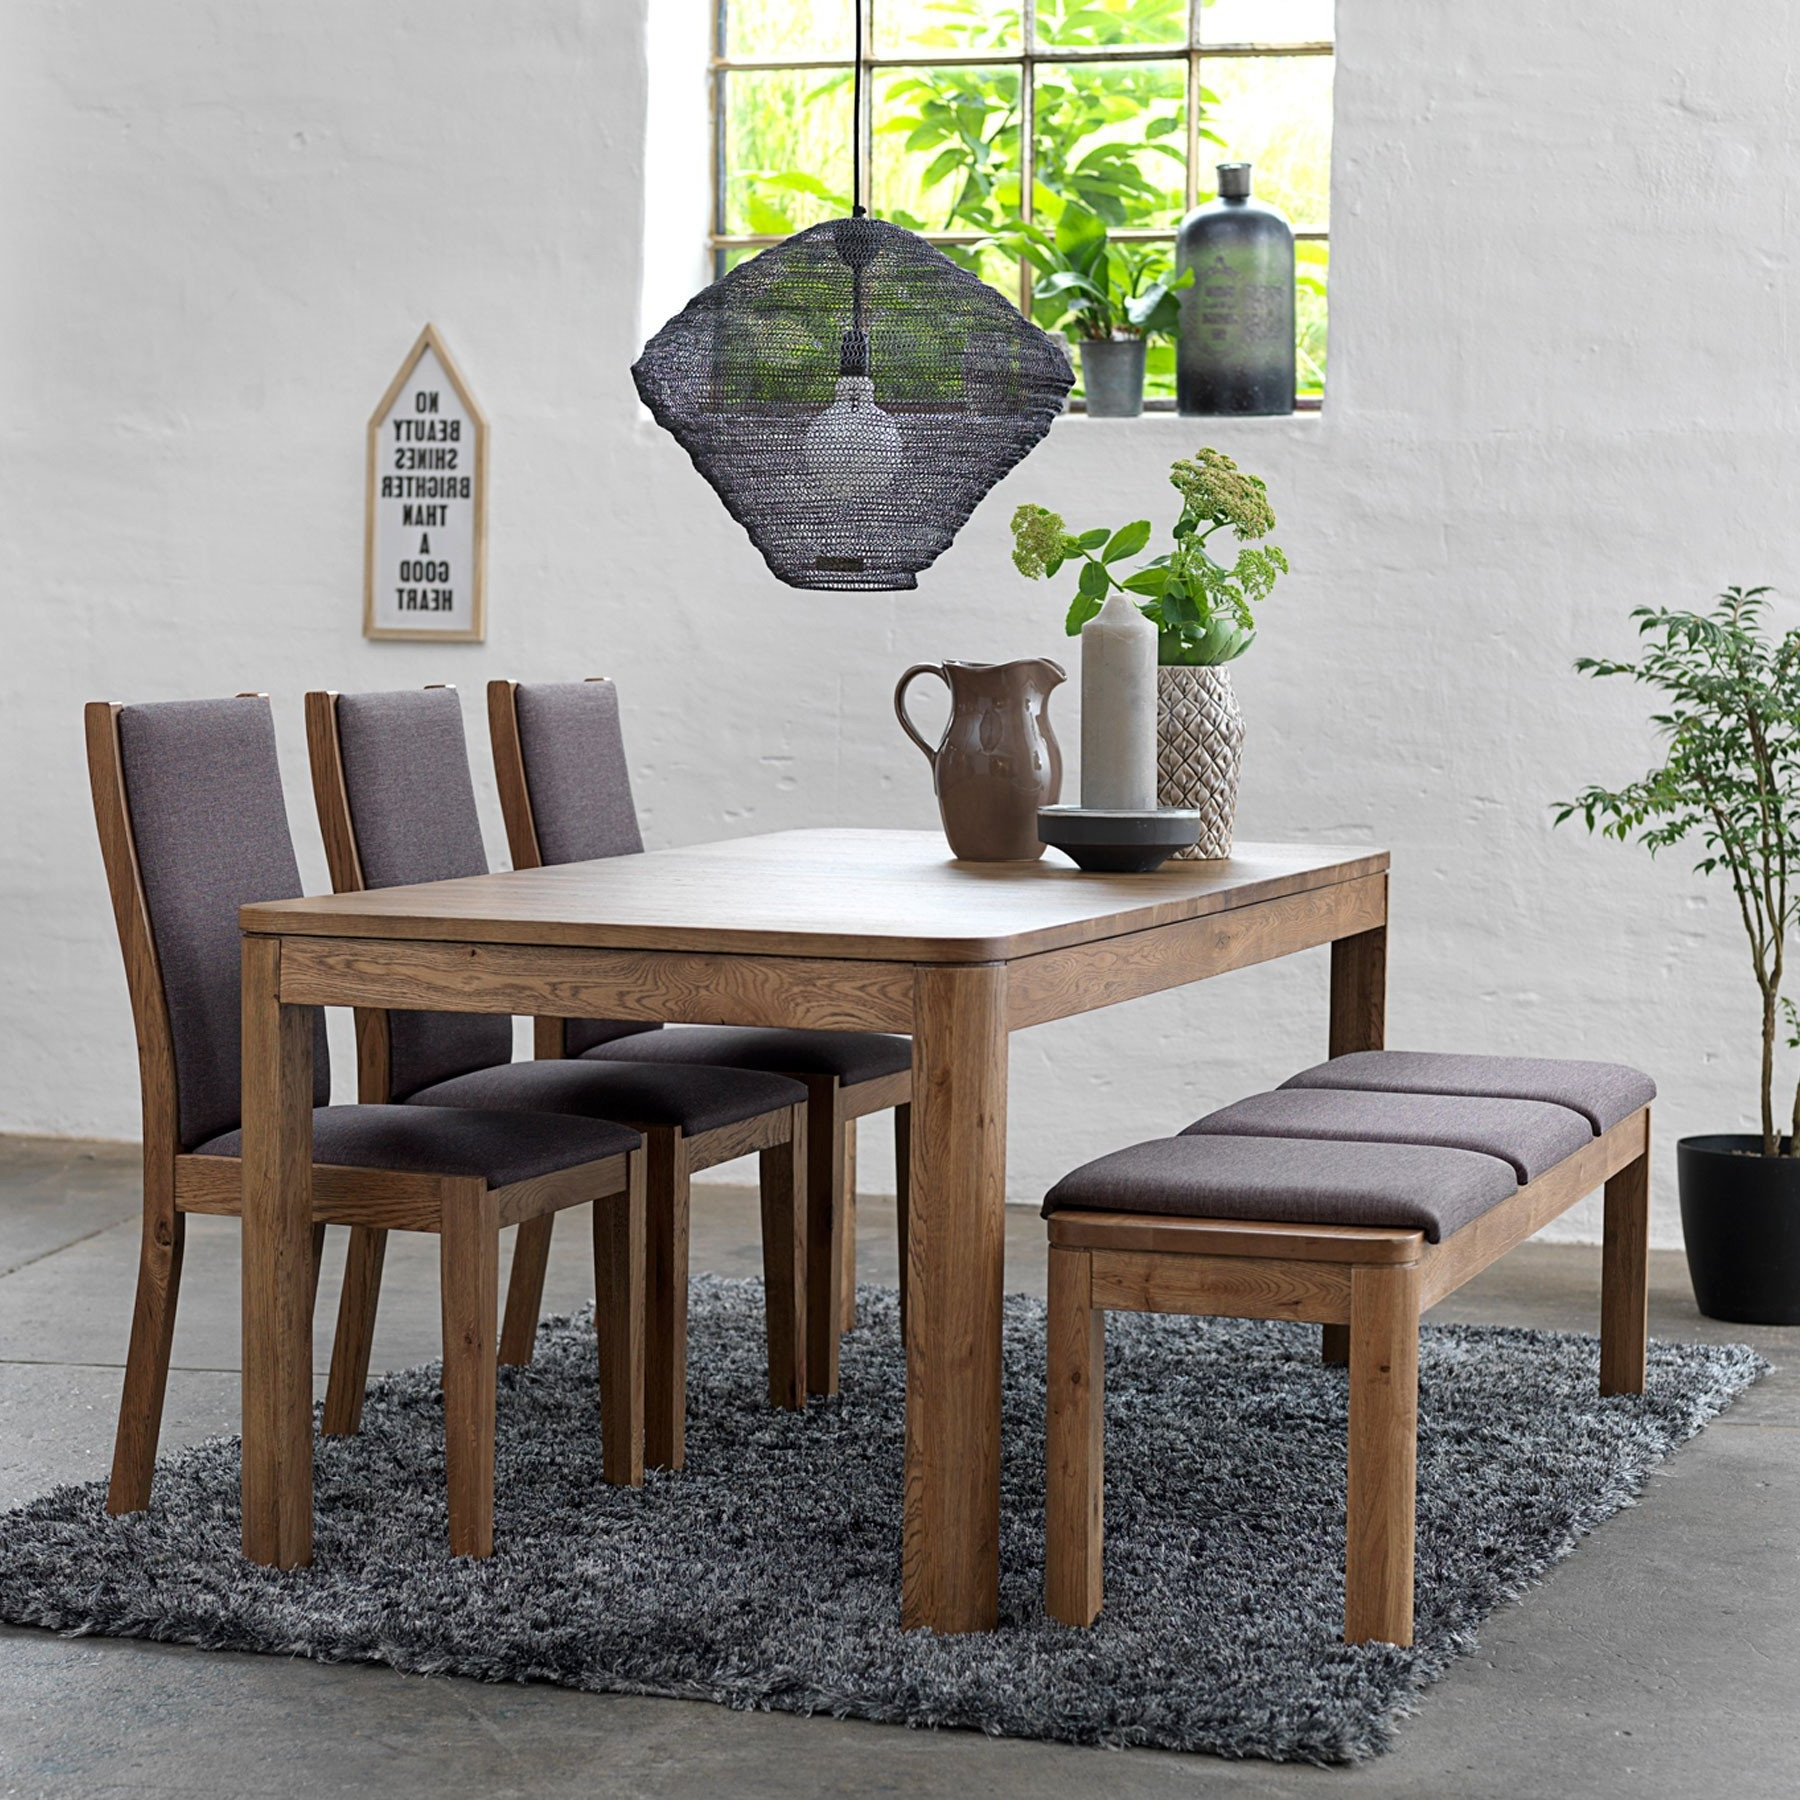 6 Seater Retangular Wood Contemporary Dining Tables Throughout Preferred 50+ Dining Table With Bench You'll Love In 2020 – Visual Hunt (View 6 of 30)